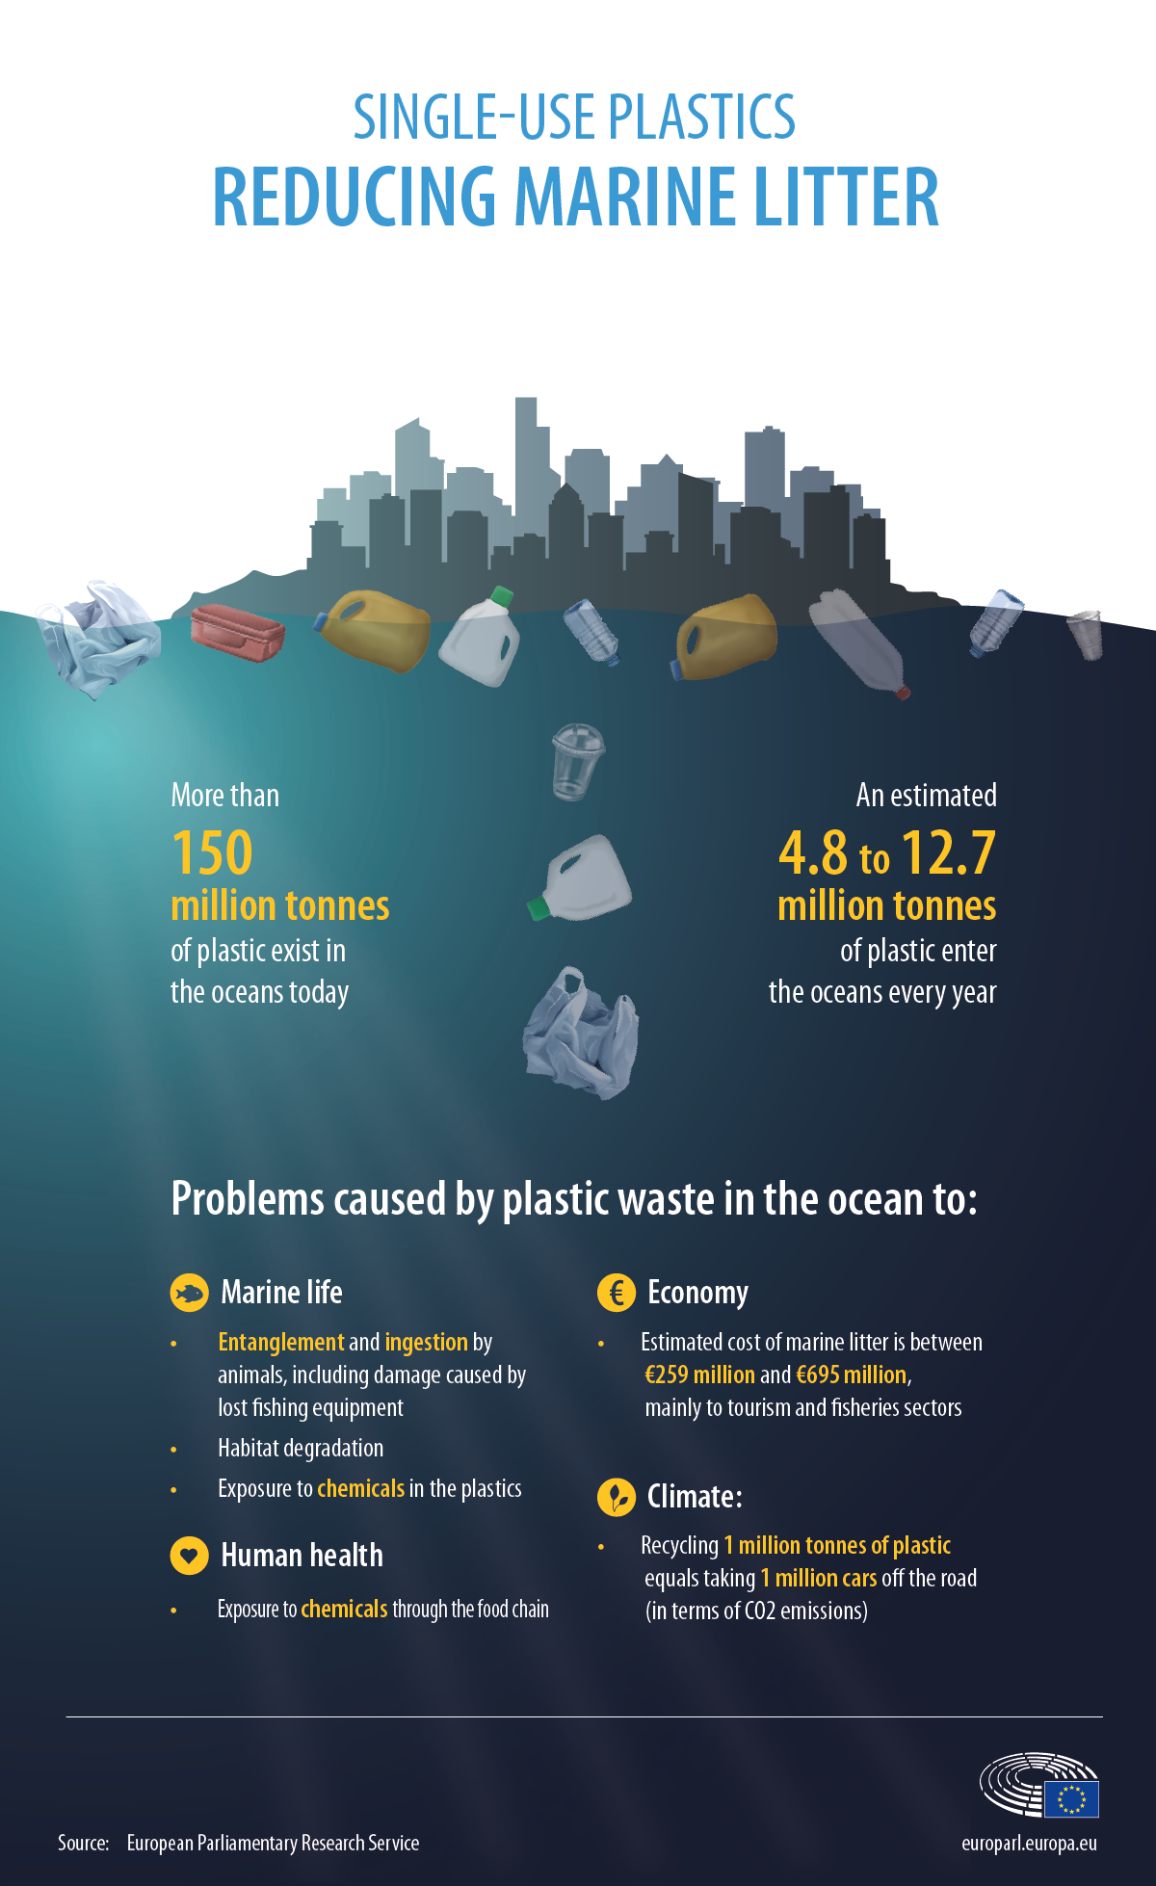 Infographic on key facts and issues caused by plastic waste in the ocean